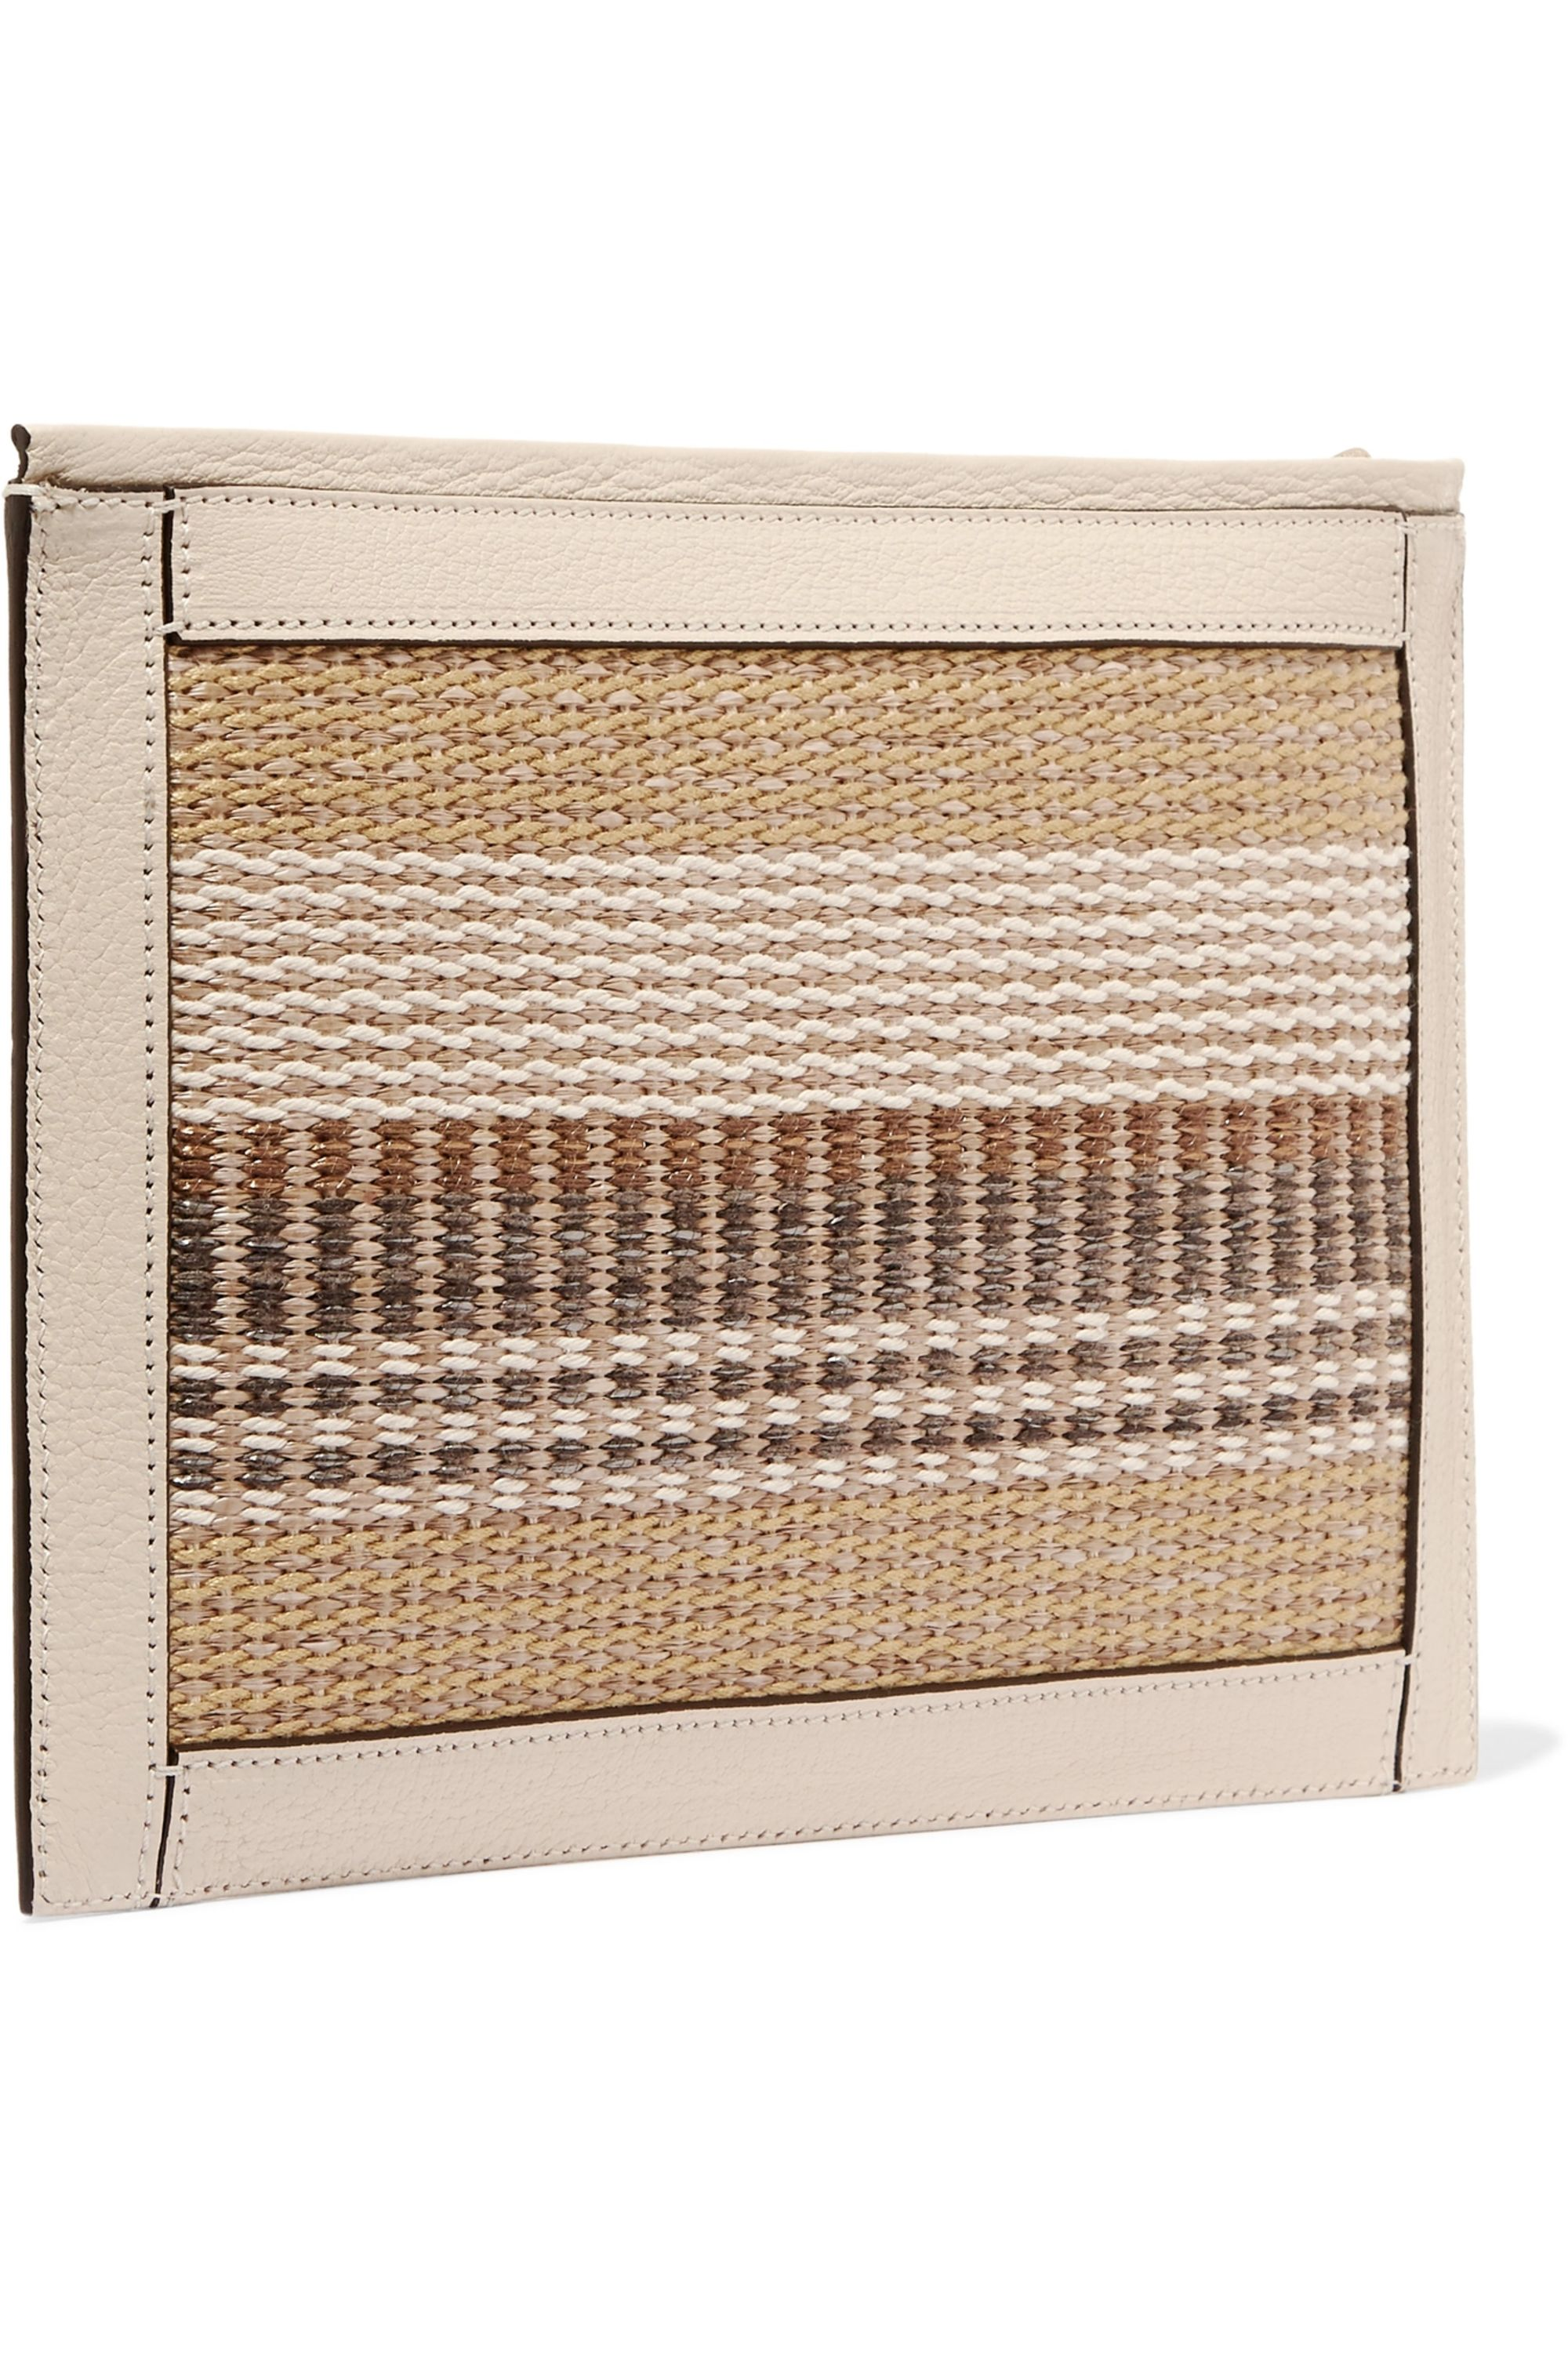 AERIN Textured leather-trimmed striped straw pouch